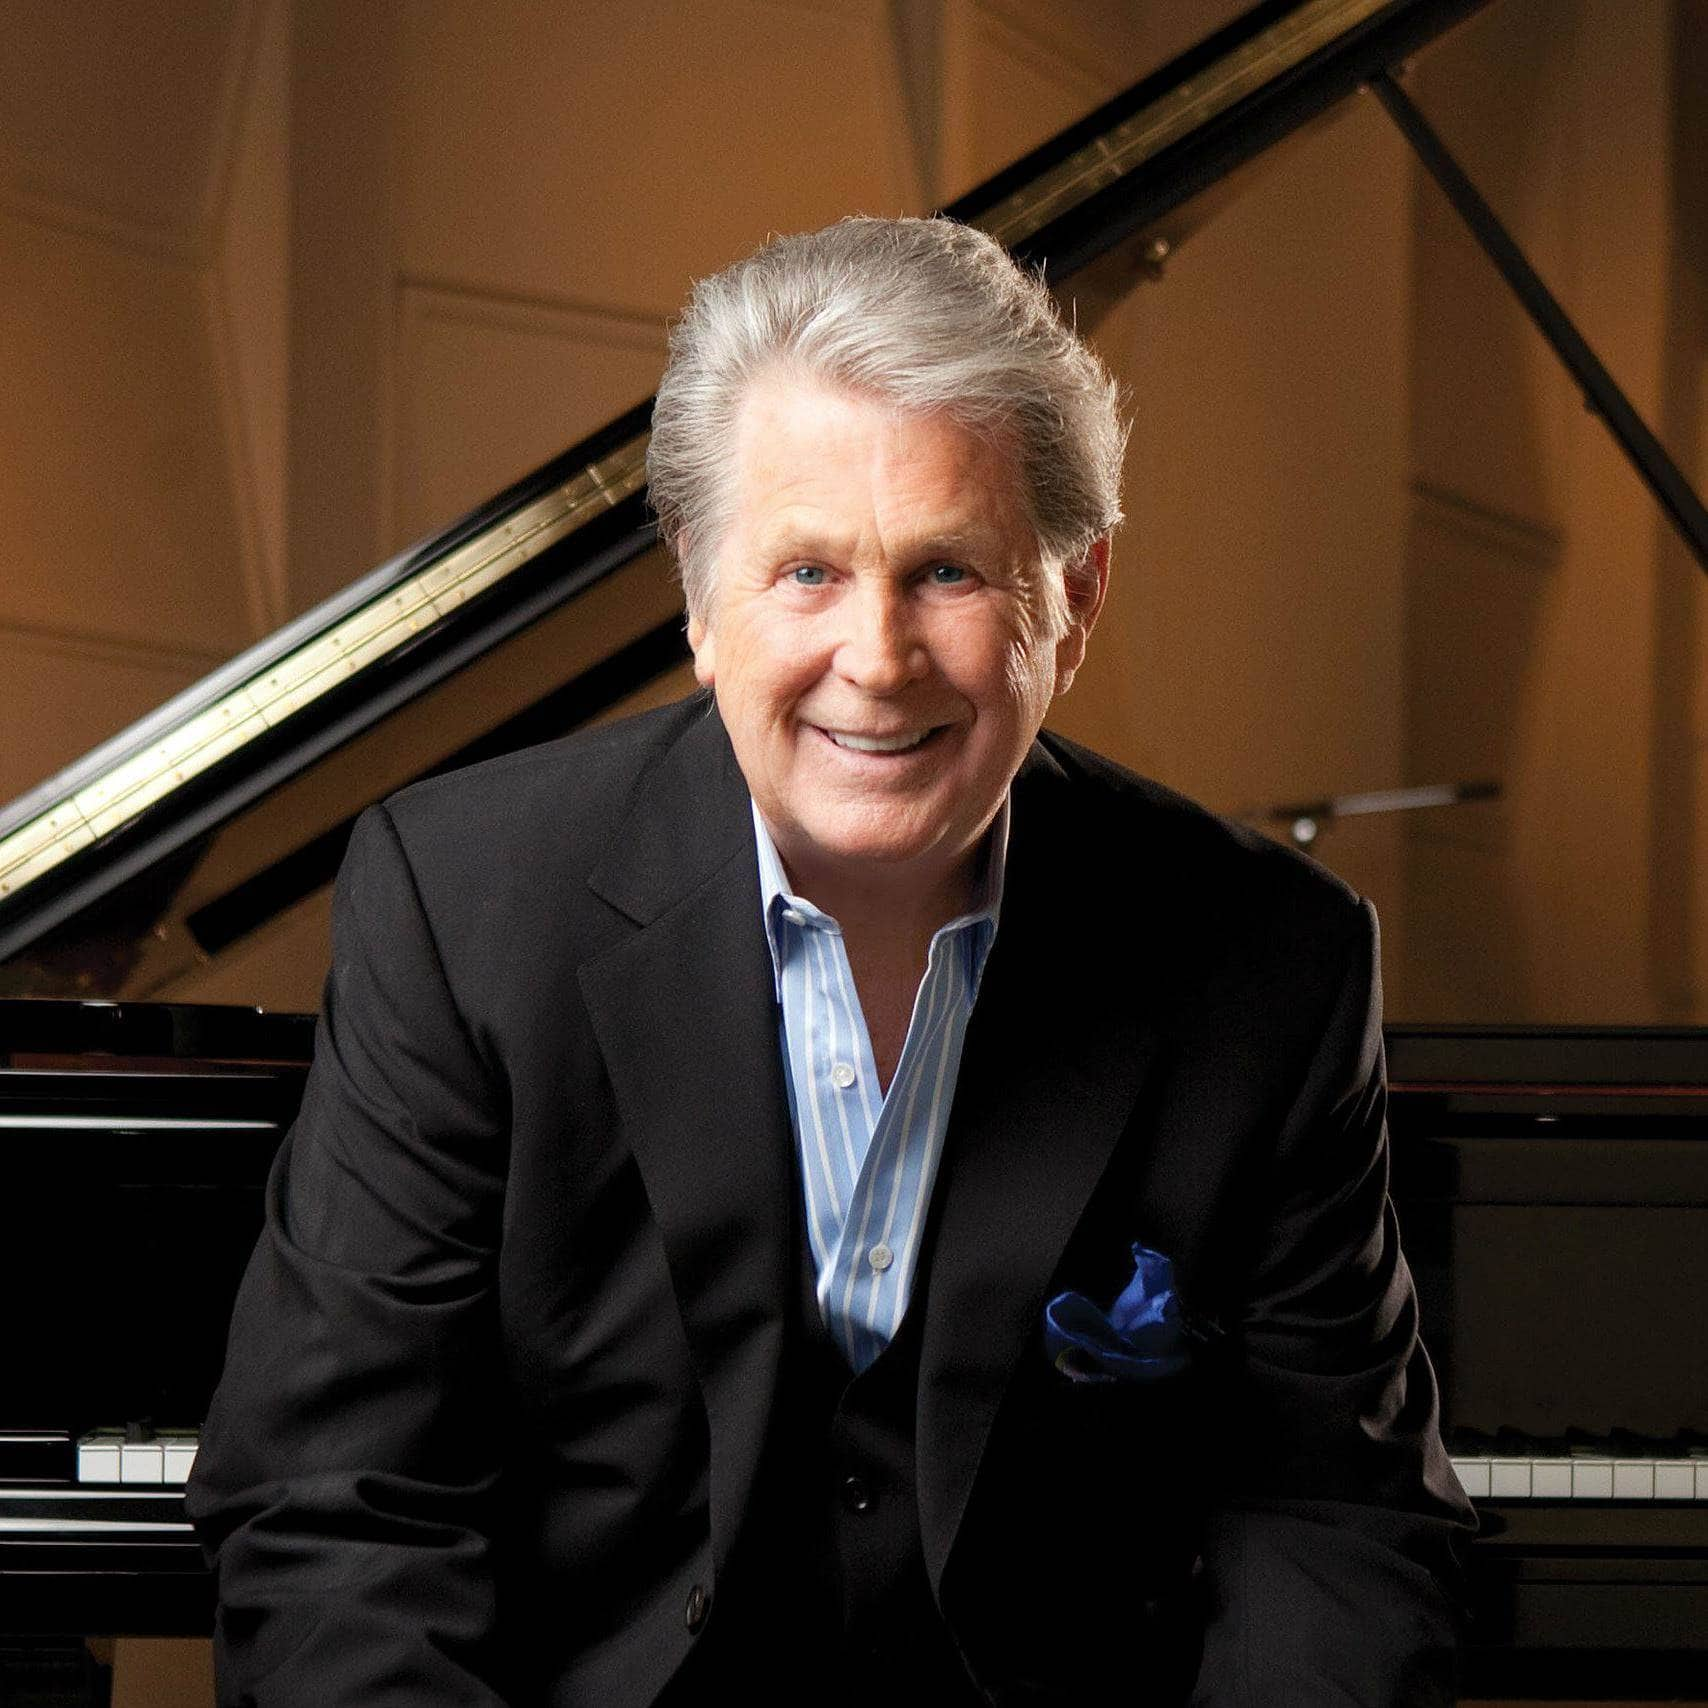 CANTANTE. Brian Wilson, fundador de The Beach Boys.